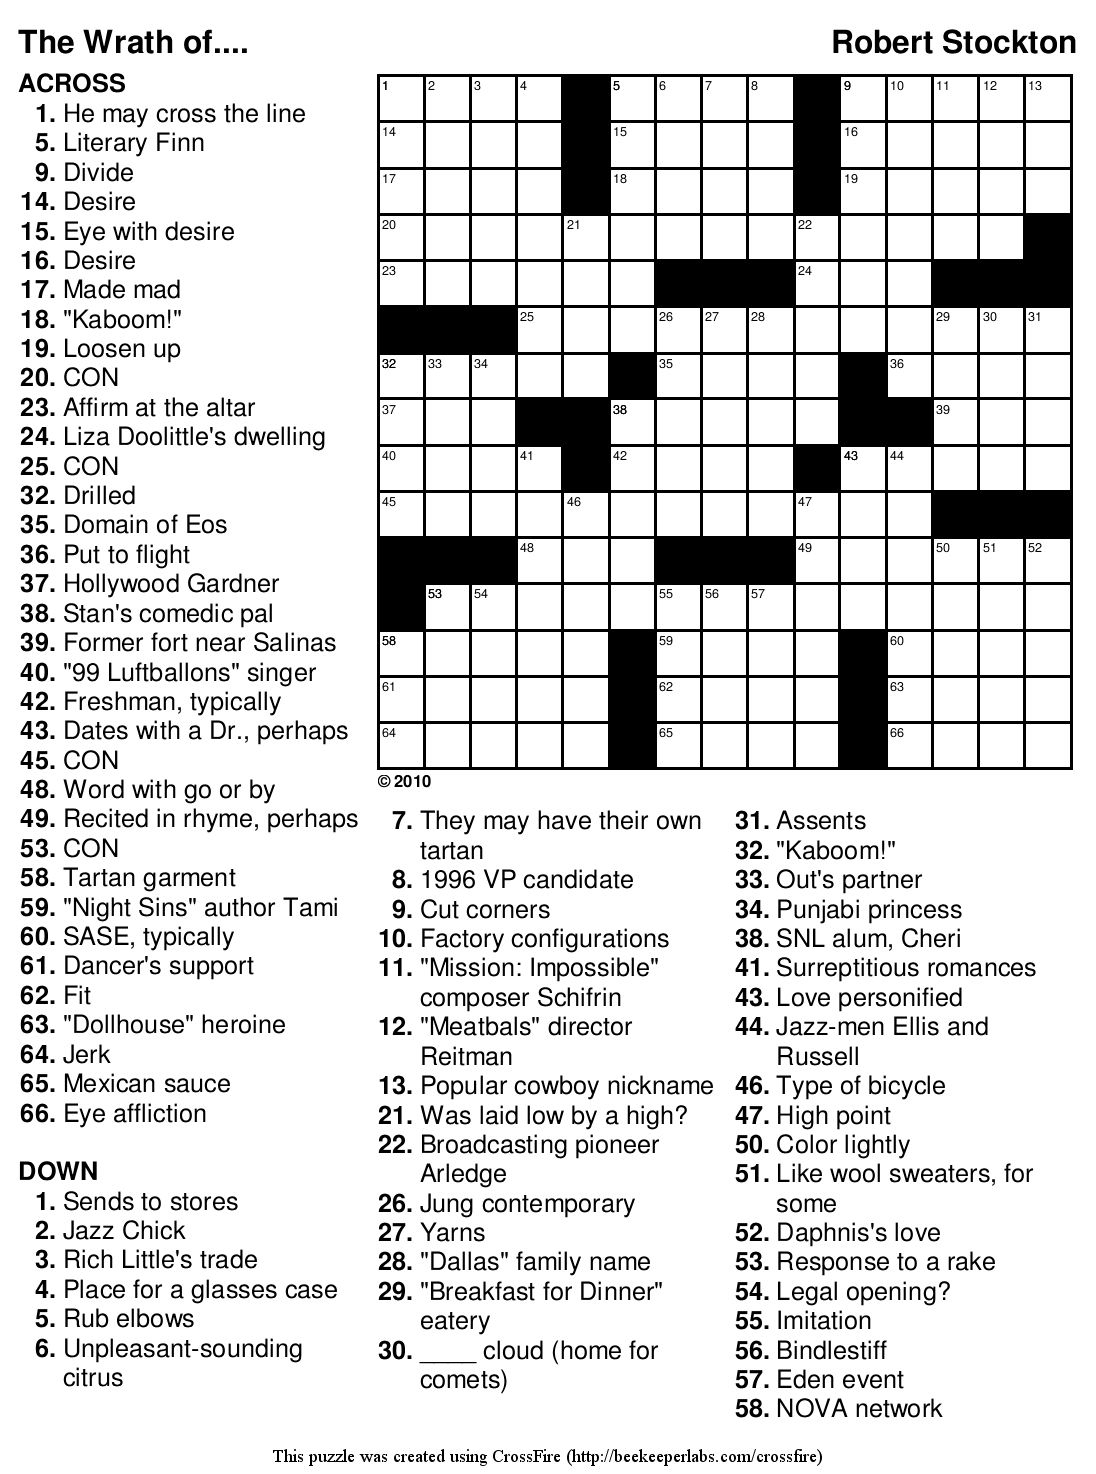 Marvelous Crossword Puzzles Easy Printable Free Org | Chas's Board - Printable Crosswords.net